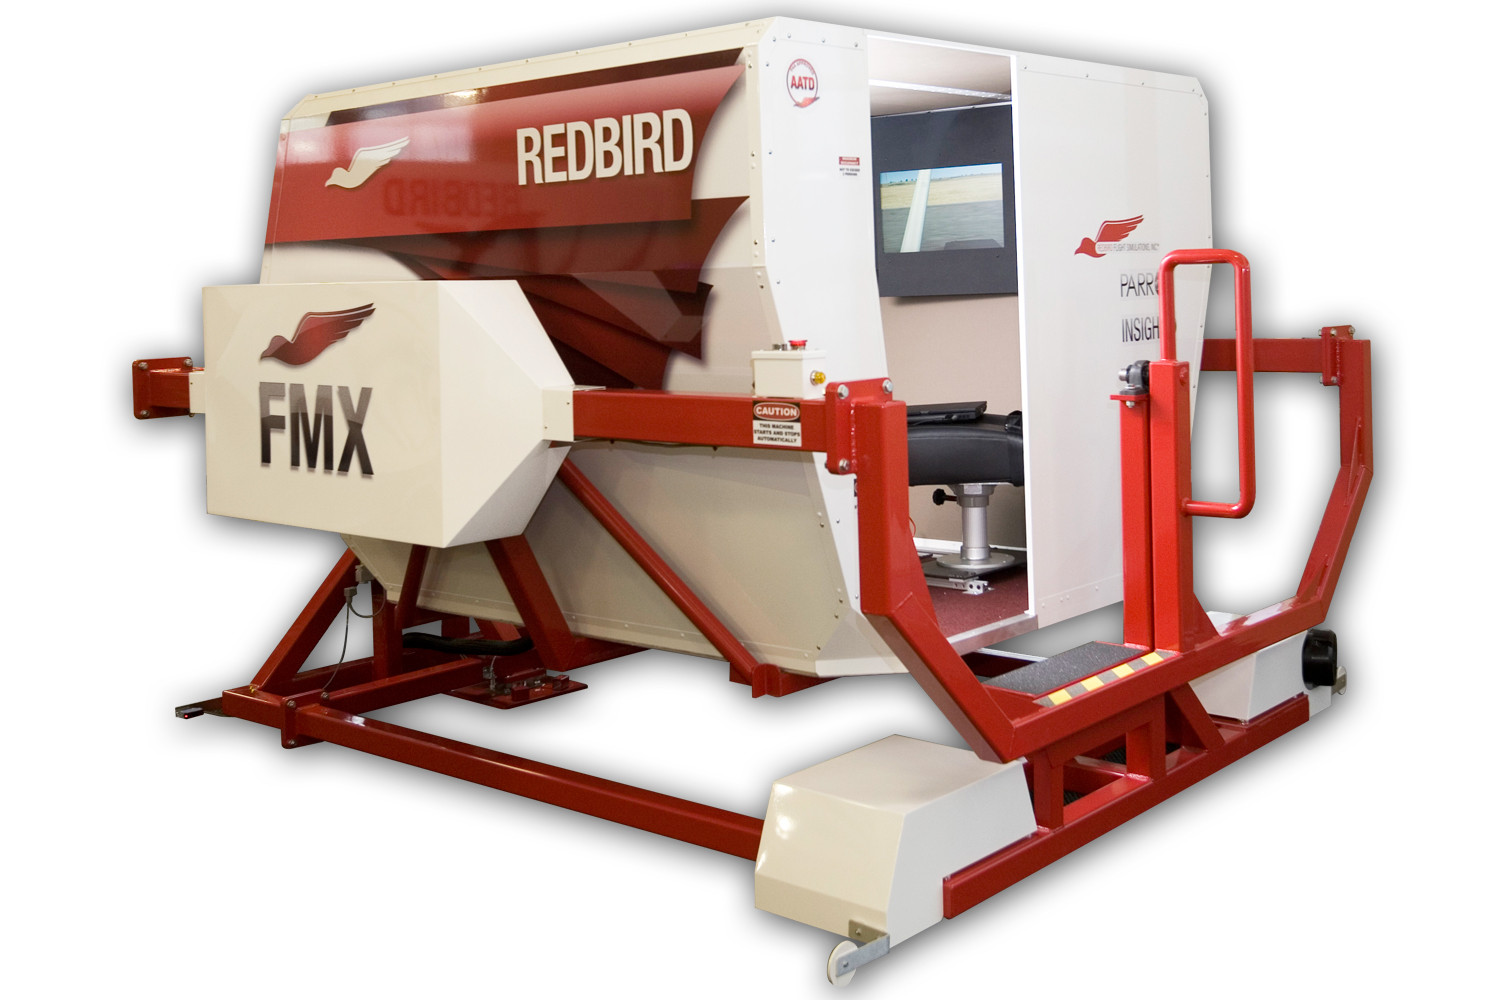 Redbird FMX Full Motion Flight Simulator